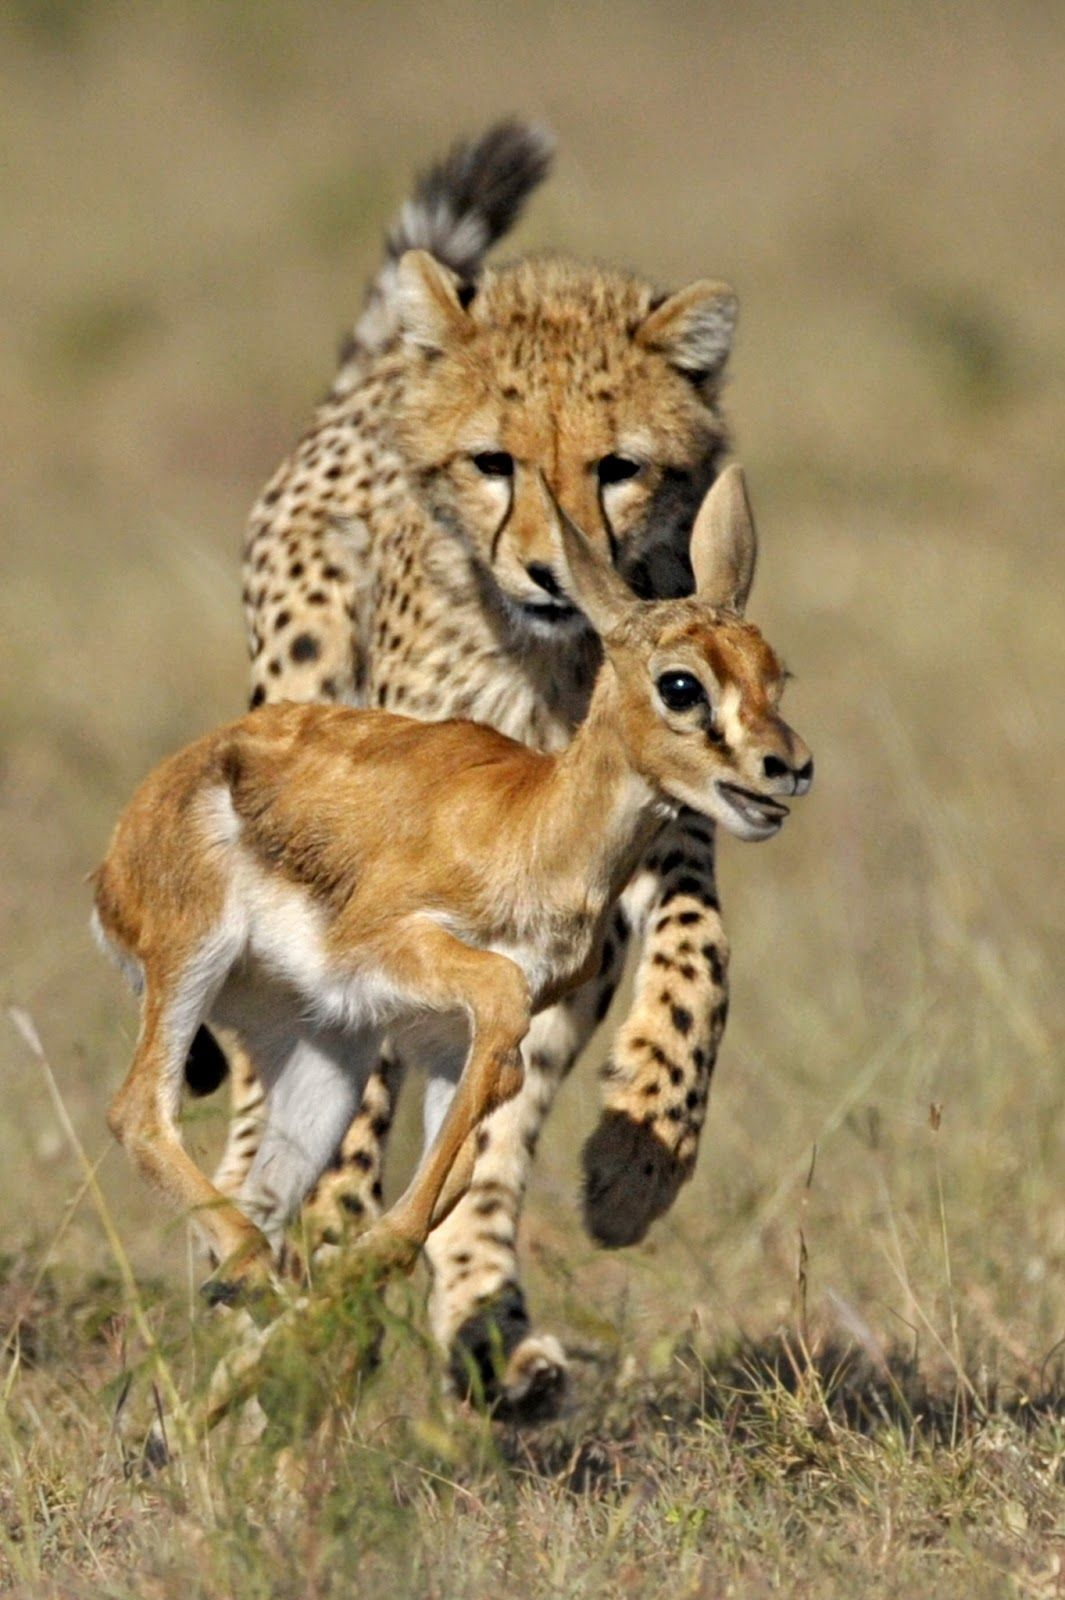 A couple more words about cheetah hunting 59